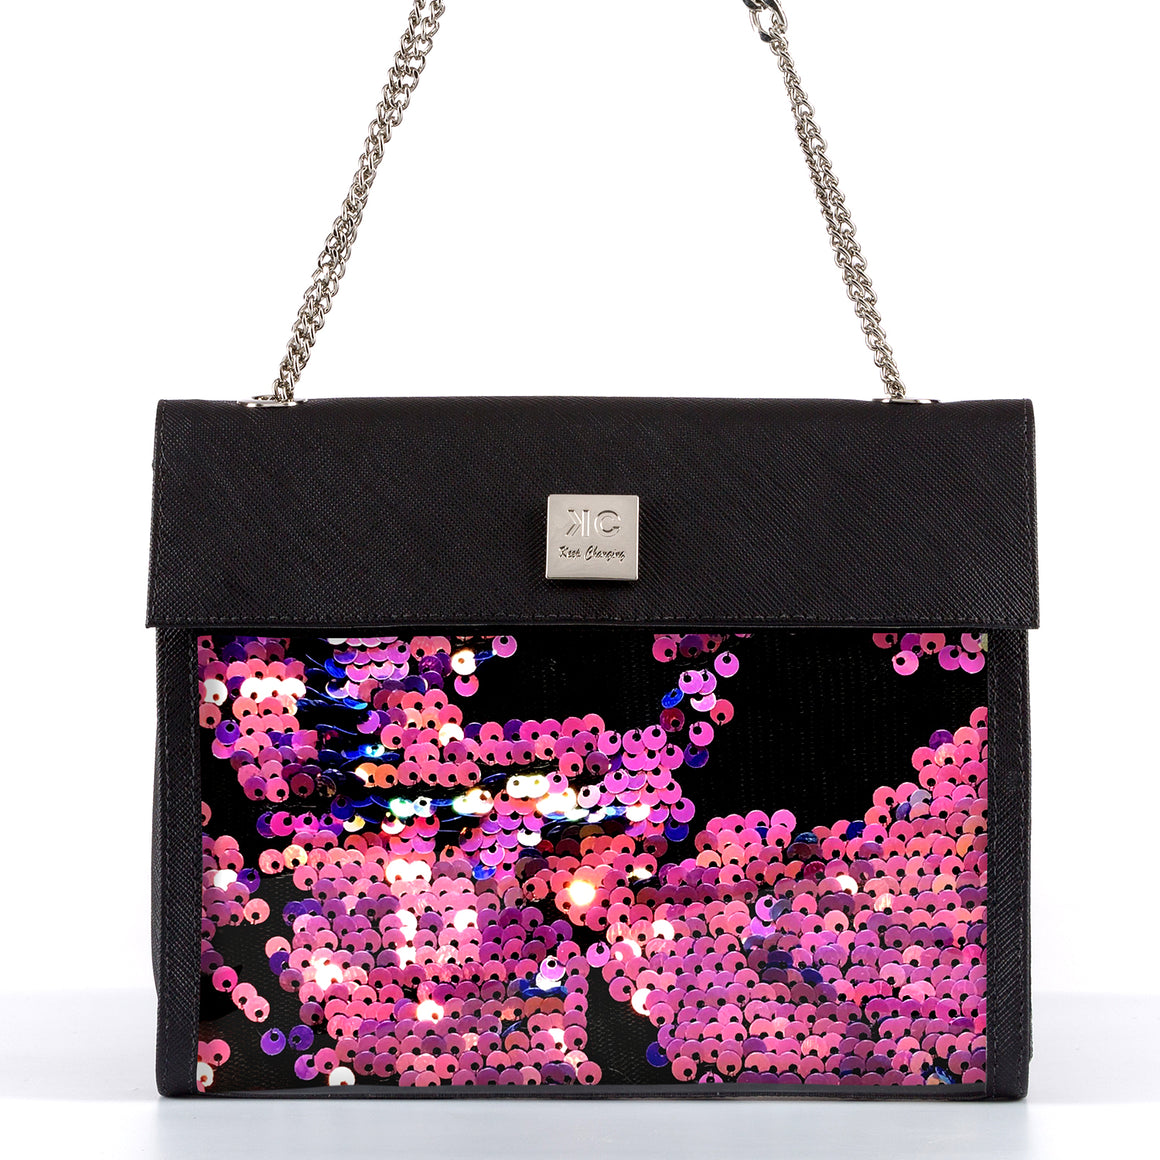 Fireworks - Shoulder Bag - Black